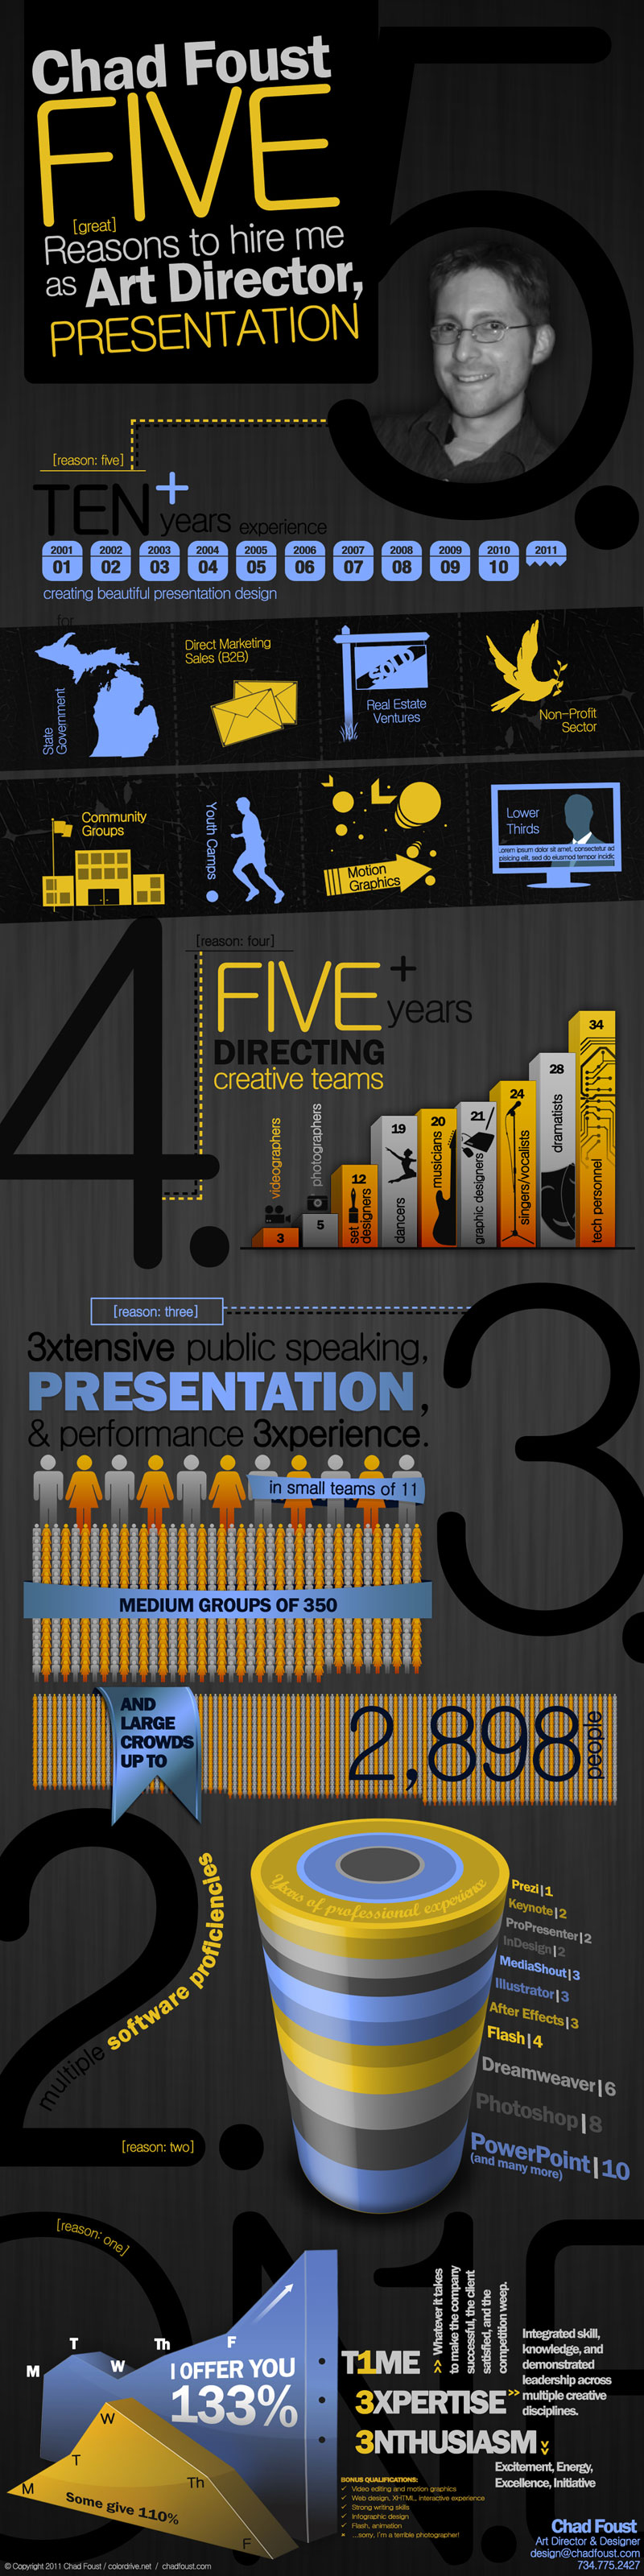 Five reasons to hire me as art director presentation